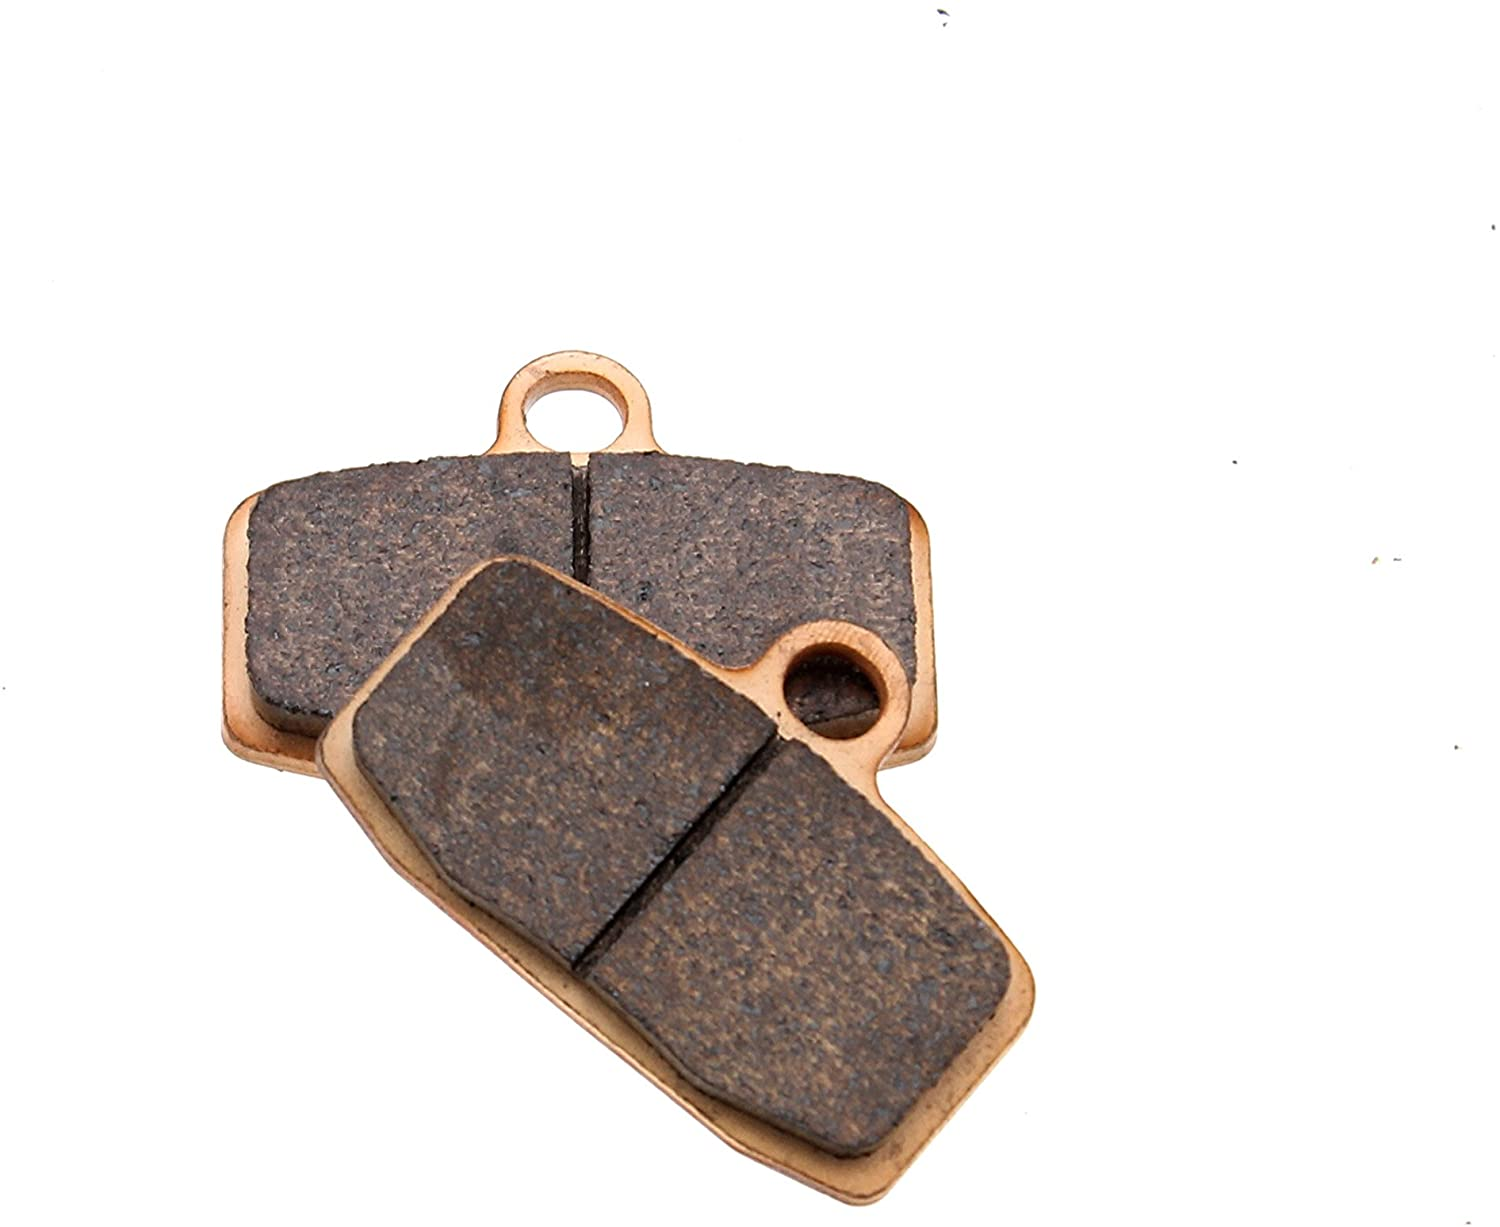 Brake Pads fits fits KTM 85SX 85 SX 2013, 2015 Front Severe Duty by Race-Driven